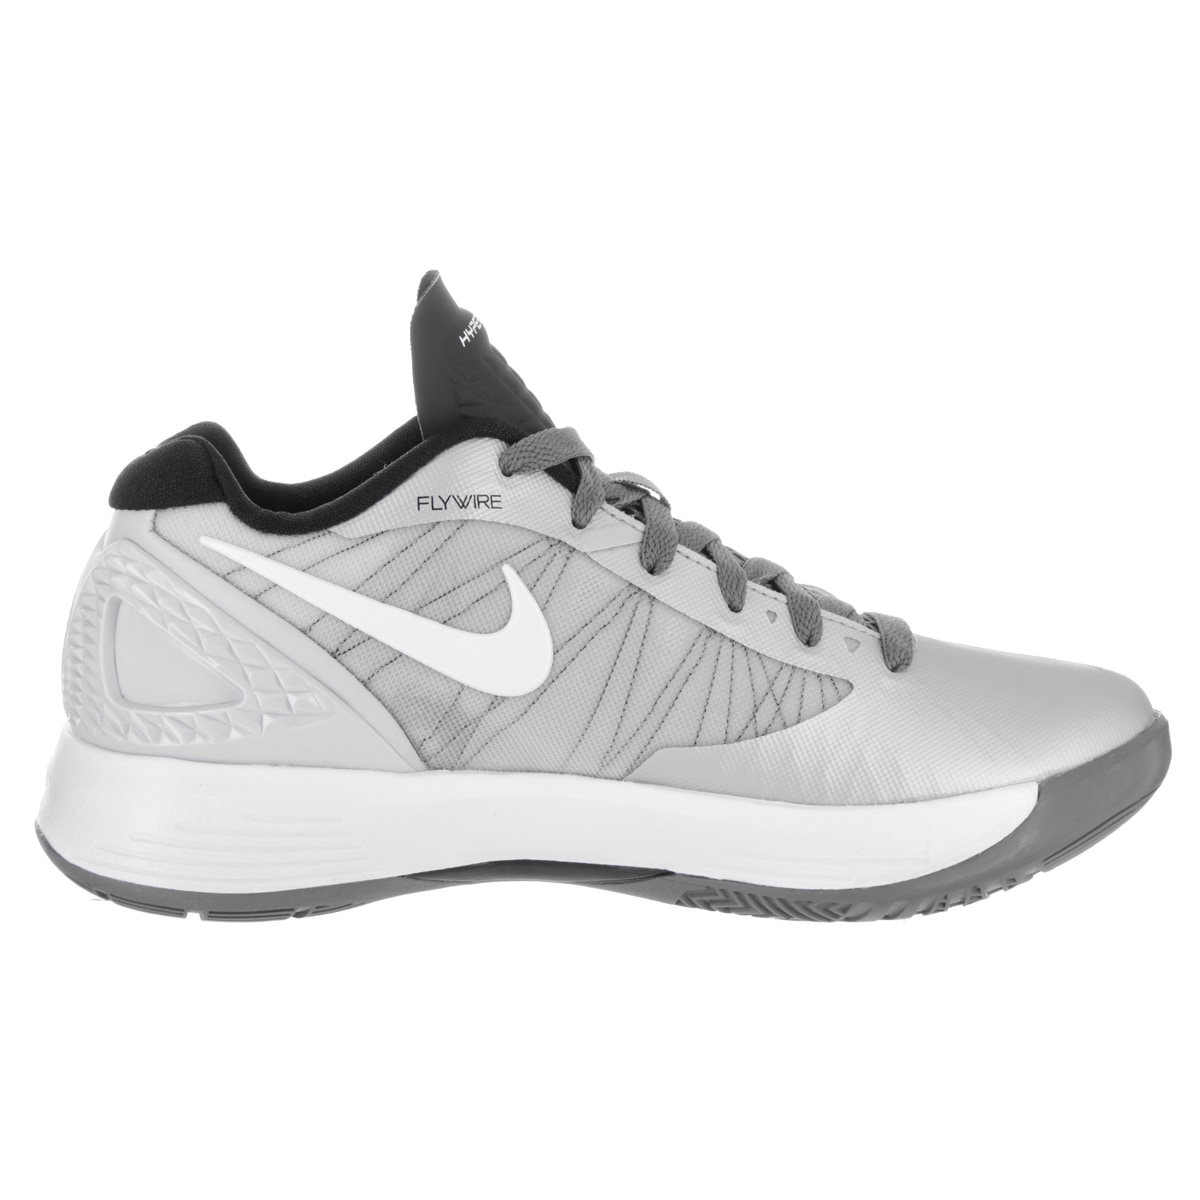 02fe3c891d87 Shop Nike Women s Volley Zoom Hyperspike Volleyball Shoes - Free Shipping  Today - Overstock - 13746886